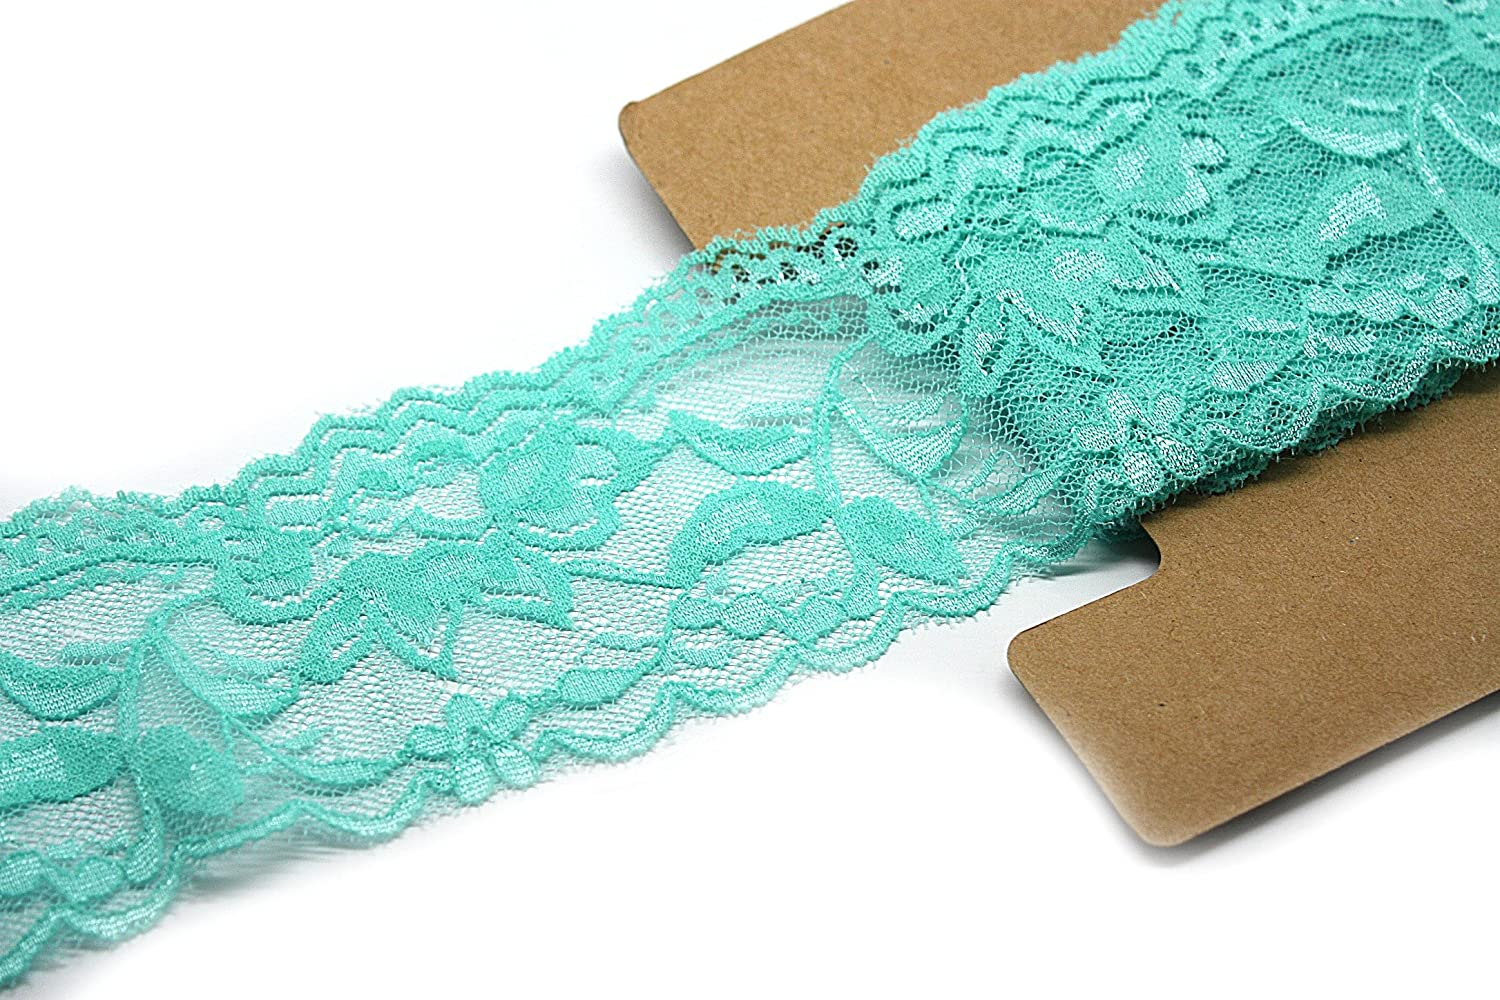 Stretch Lace Elastic Ivory Trim Lace for Headbands Garters 10 Yards 2 Inch Wide